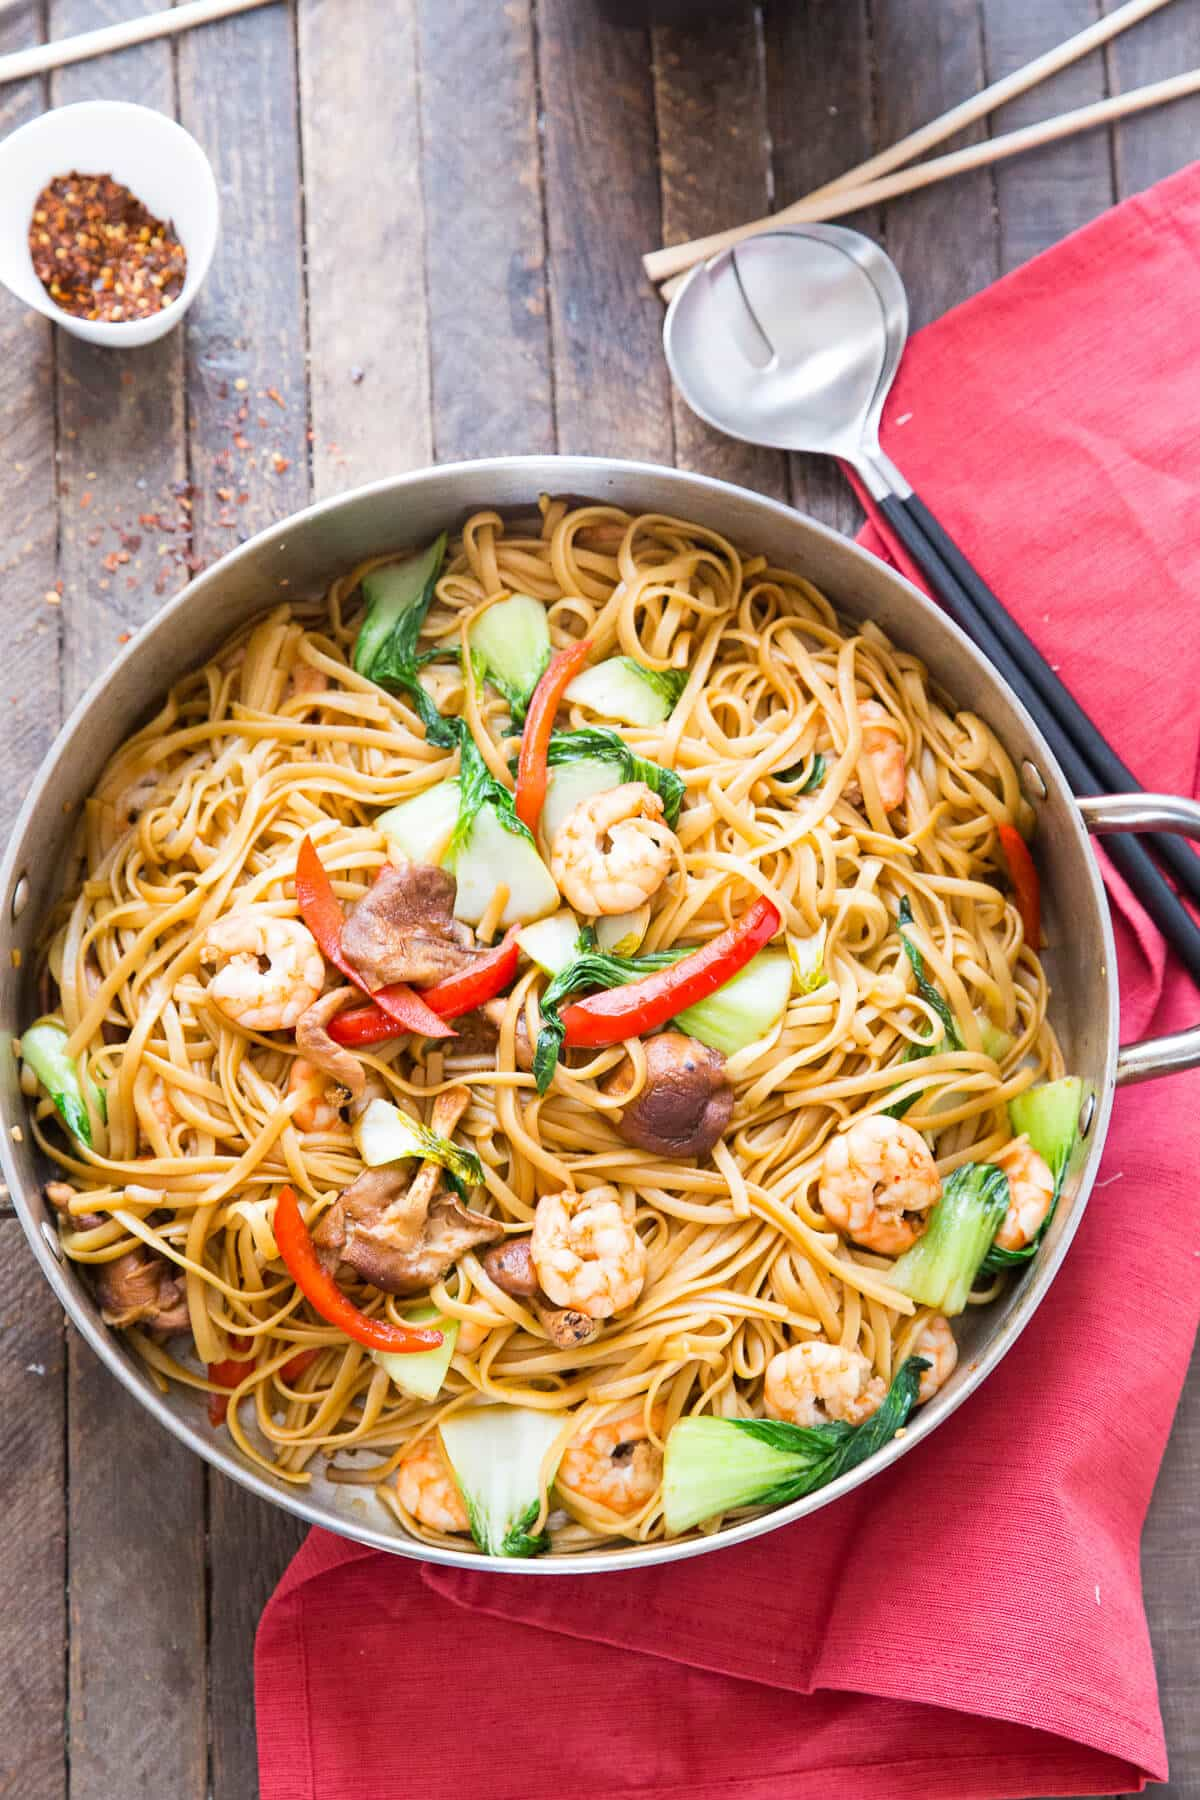 Shrimp Lo Mein is a dish that combines ease and flavor! Saucy noodles, vegetables, and shrimp make take out a thing of the past!